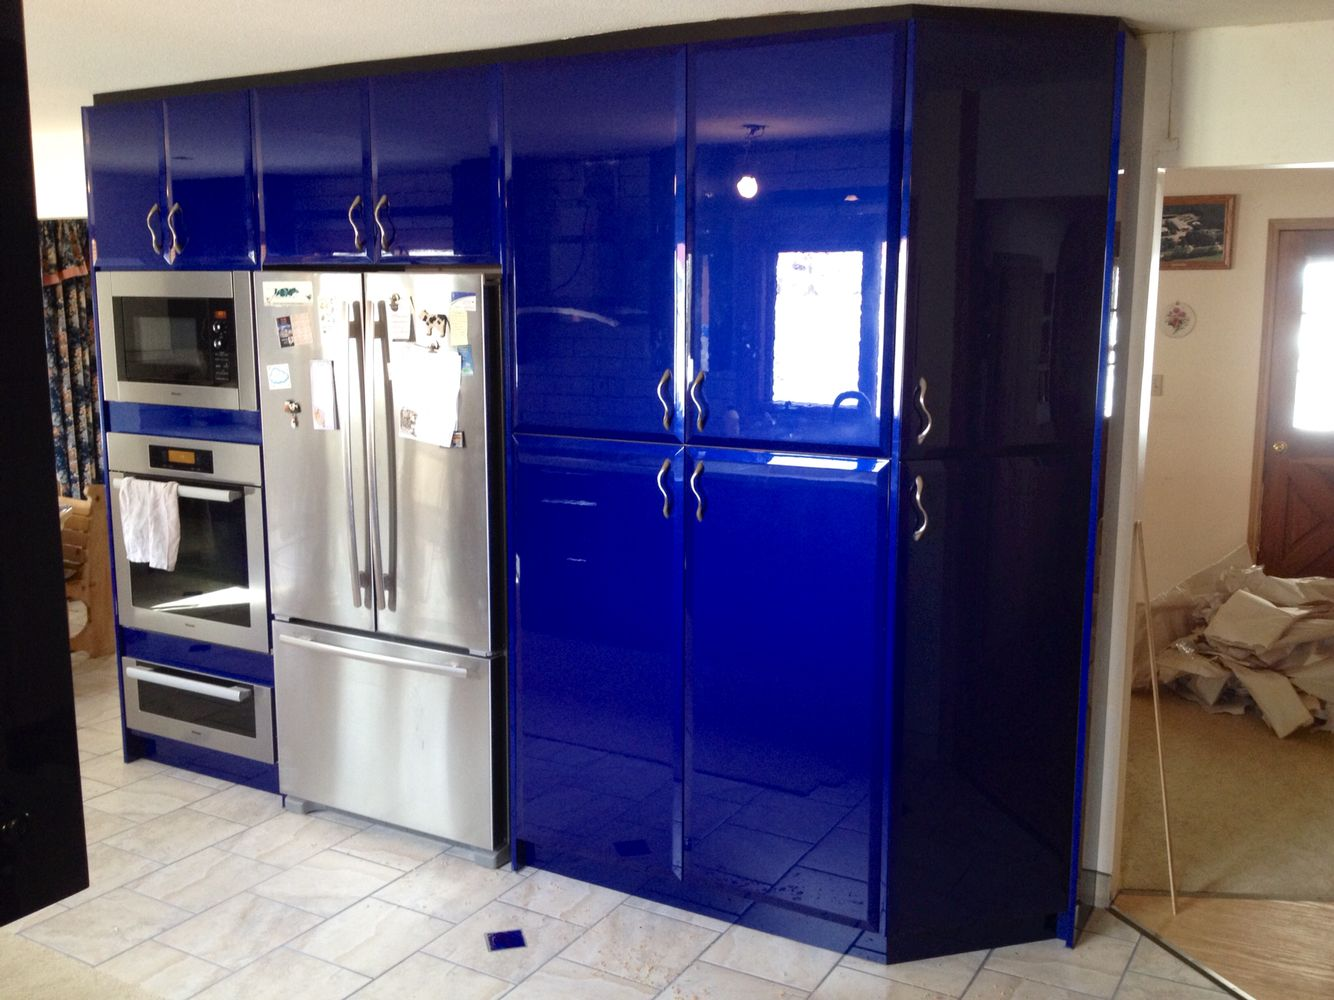 High gloss automotive paint on kitchen cabinets | High ...